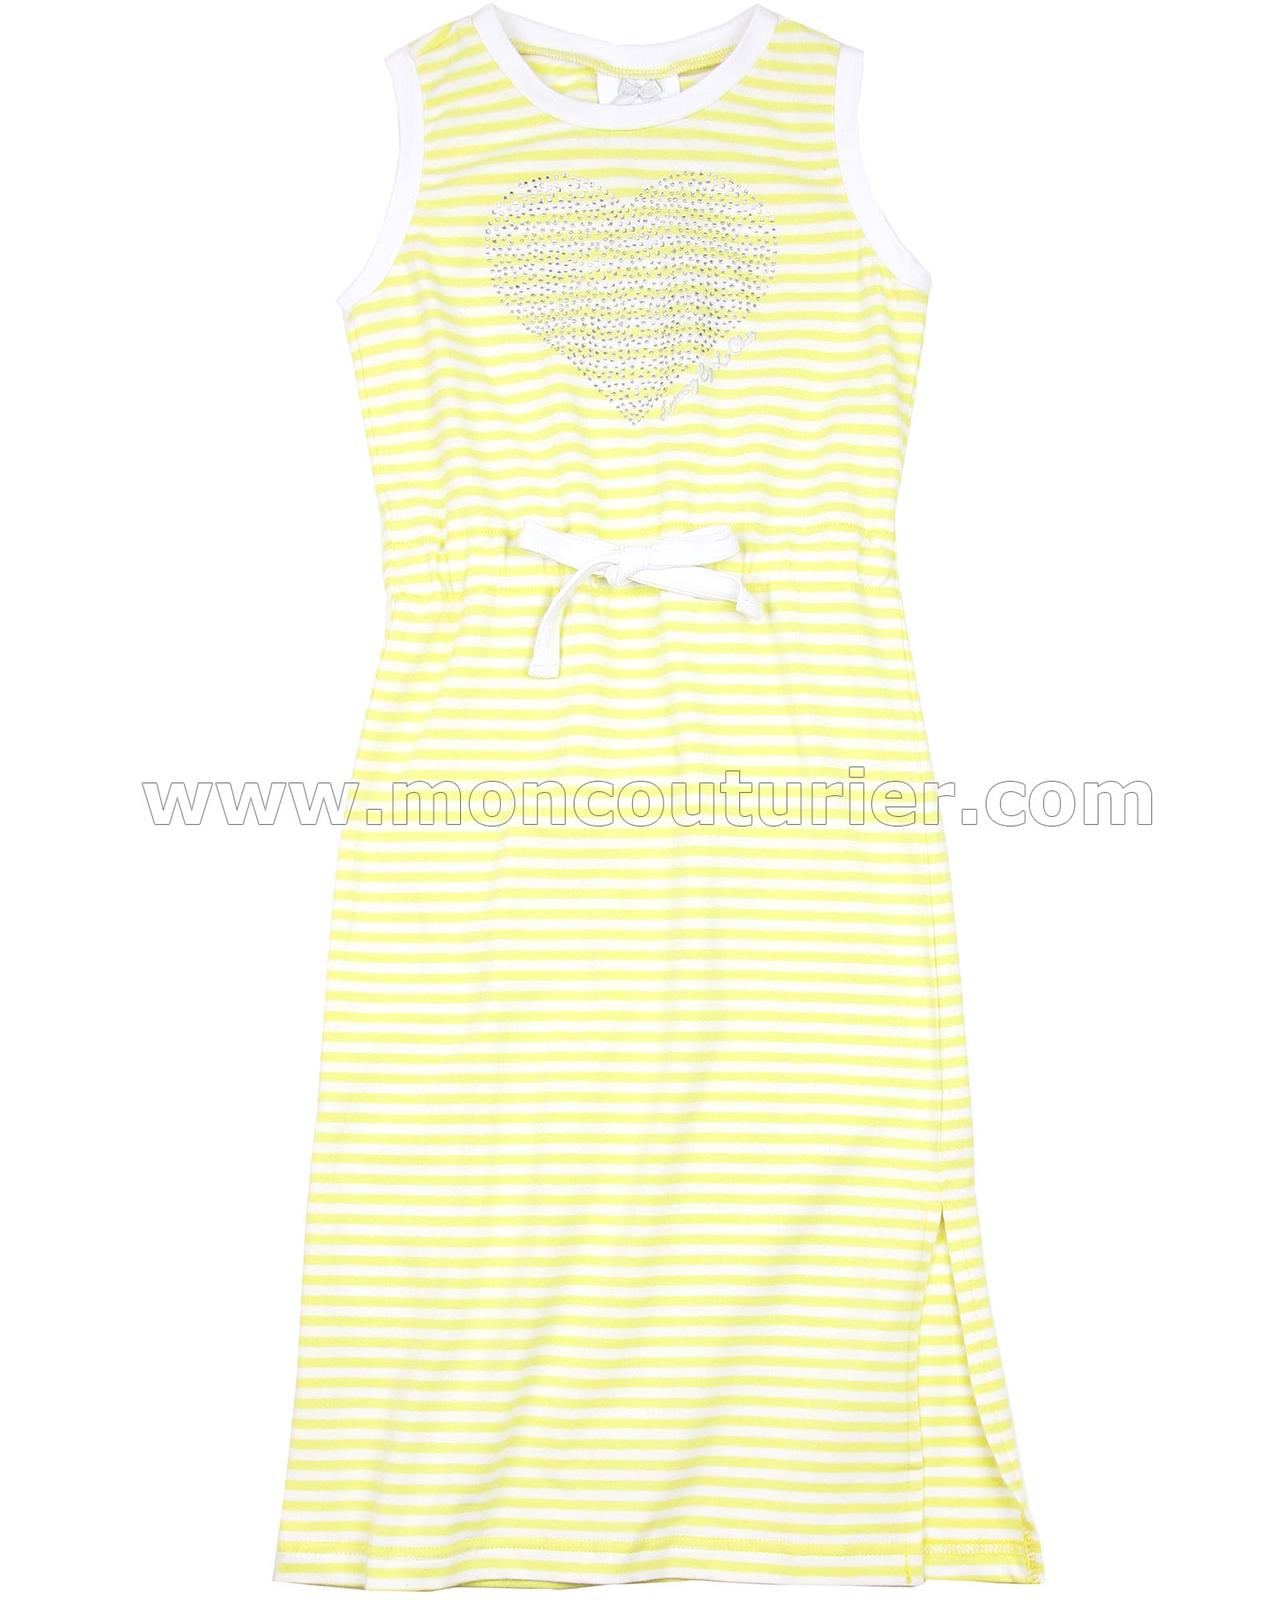 d9043dd71 Le Chic Girls' Yellow Jersey Dress - Le Chic - Le Chic Summer 2017